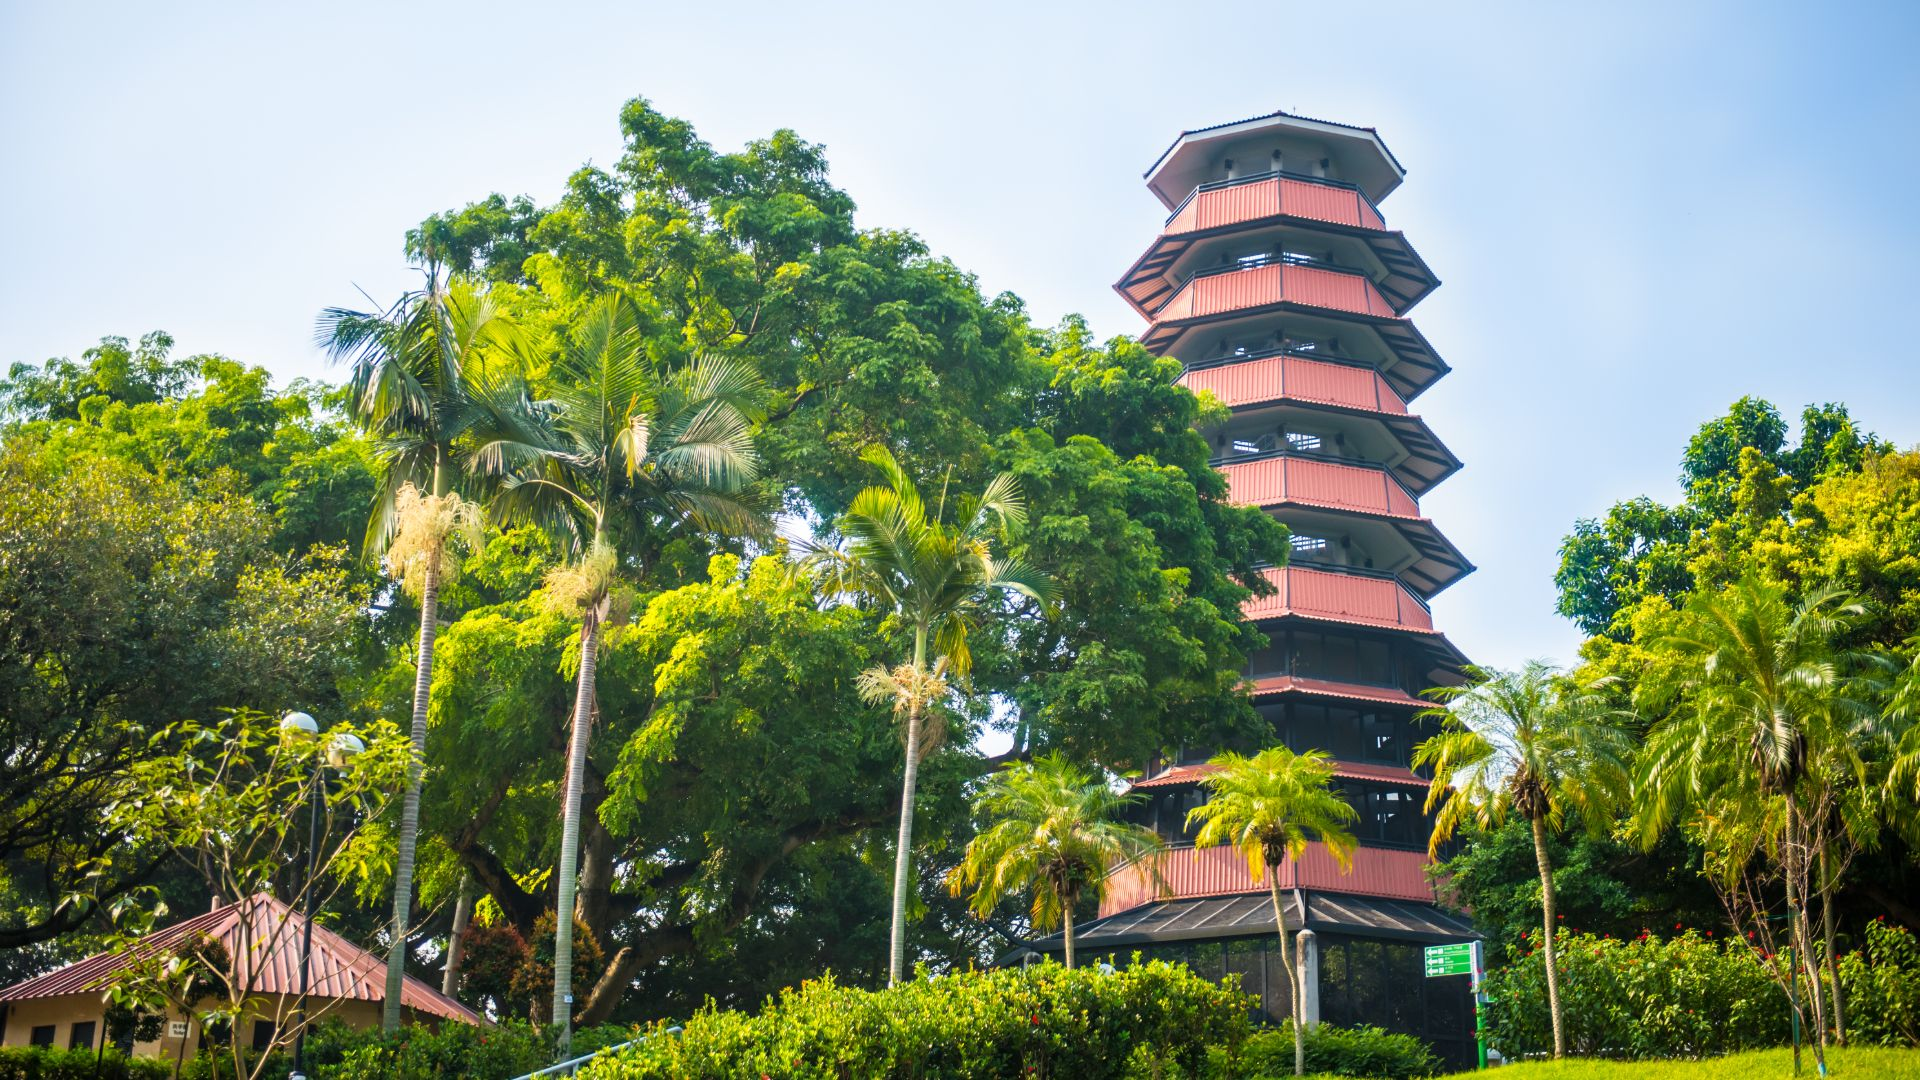 A day in Yuen Long: escape the city's urban landscape to visit this picturesque foodie paradise